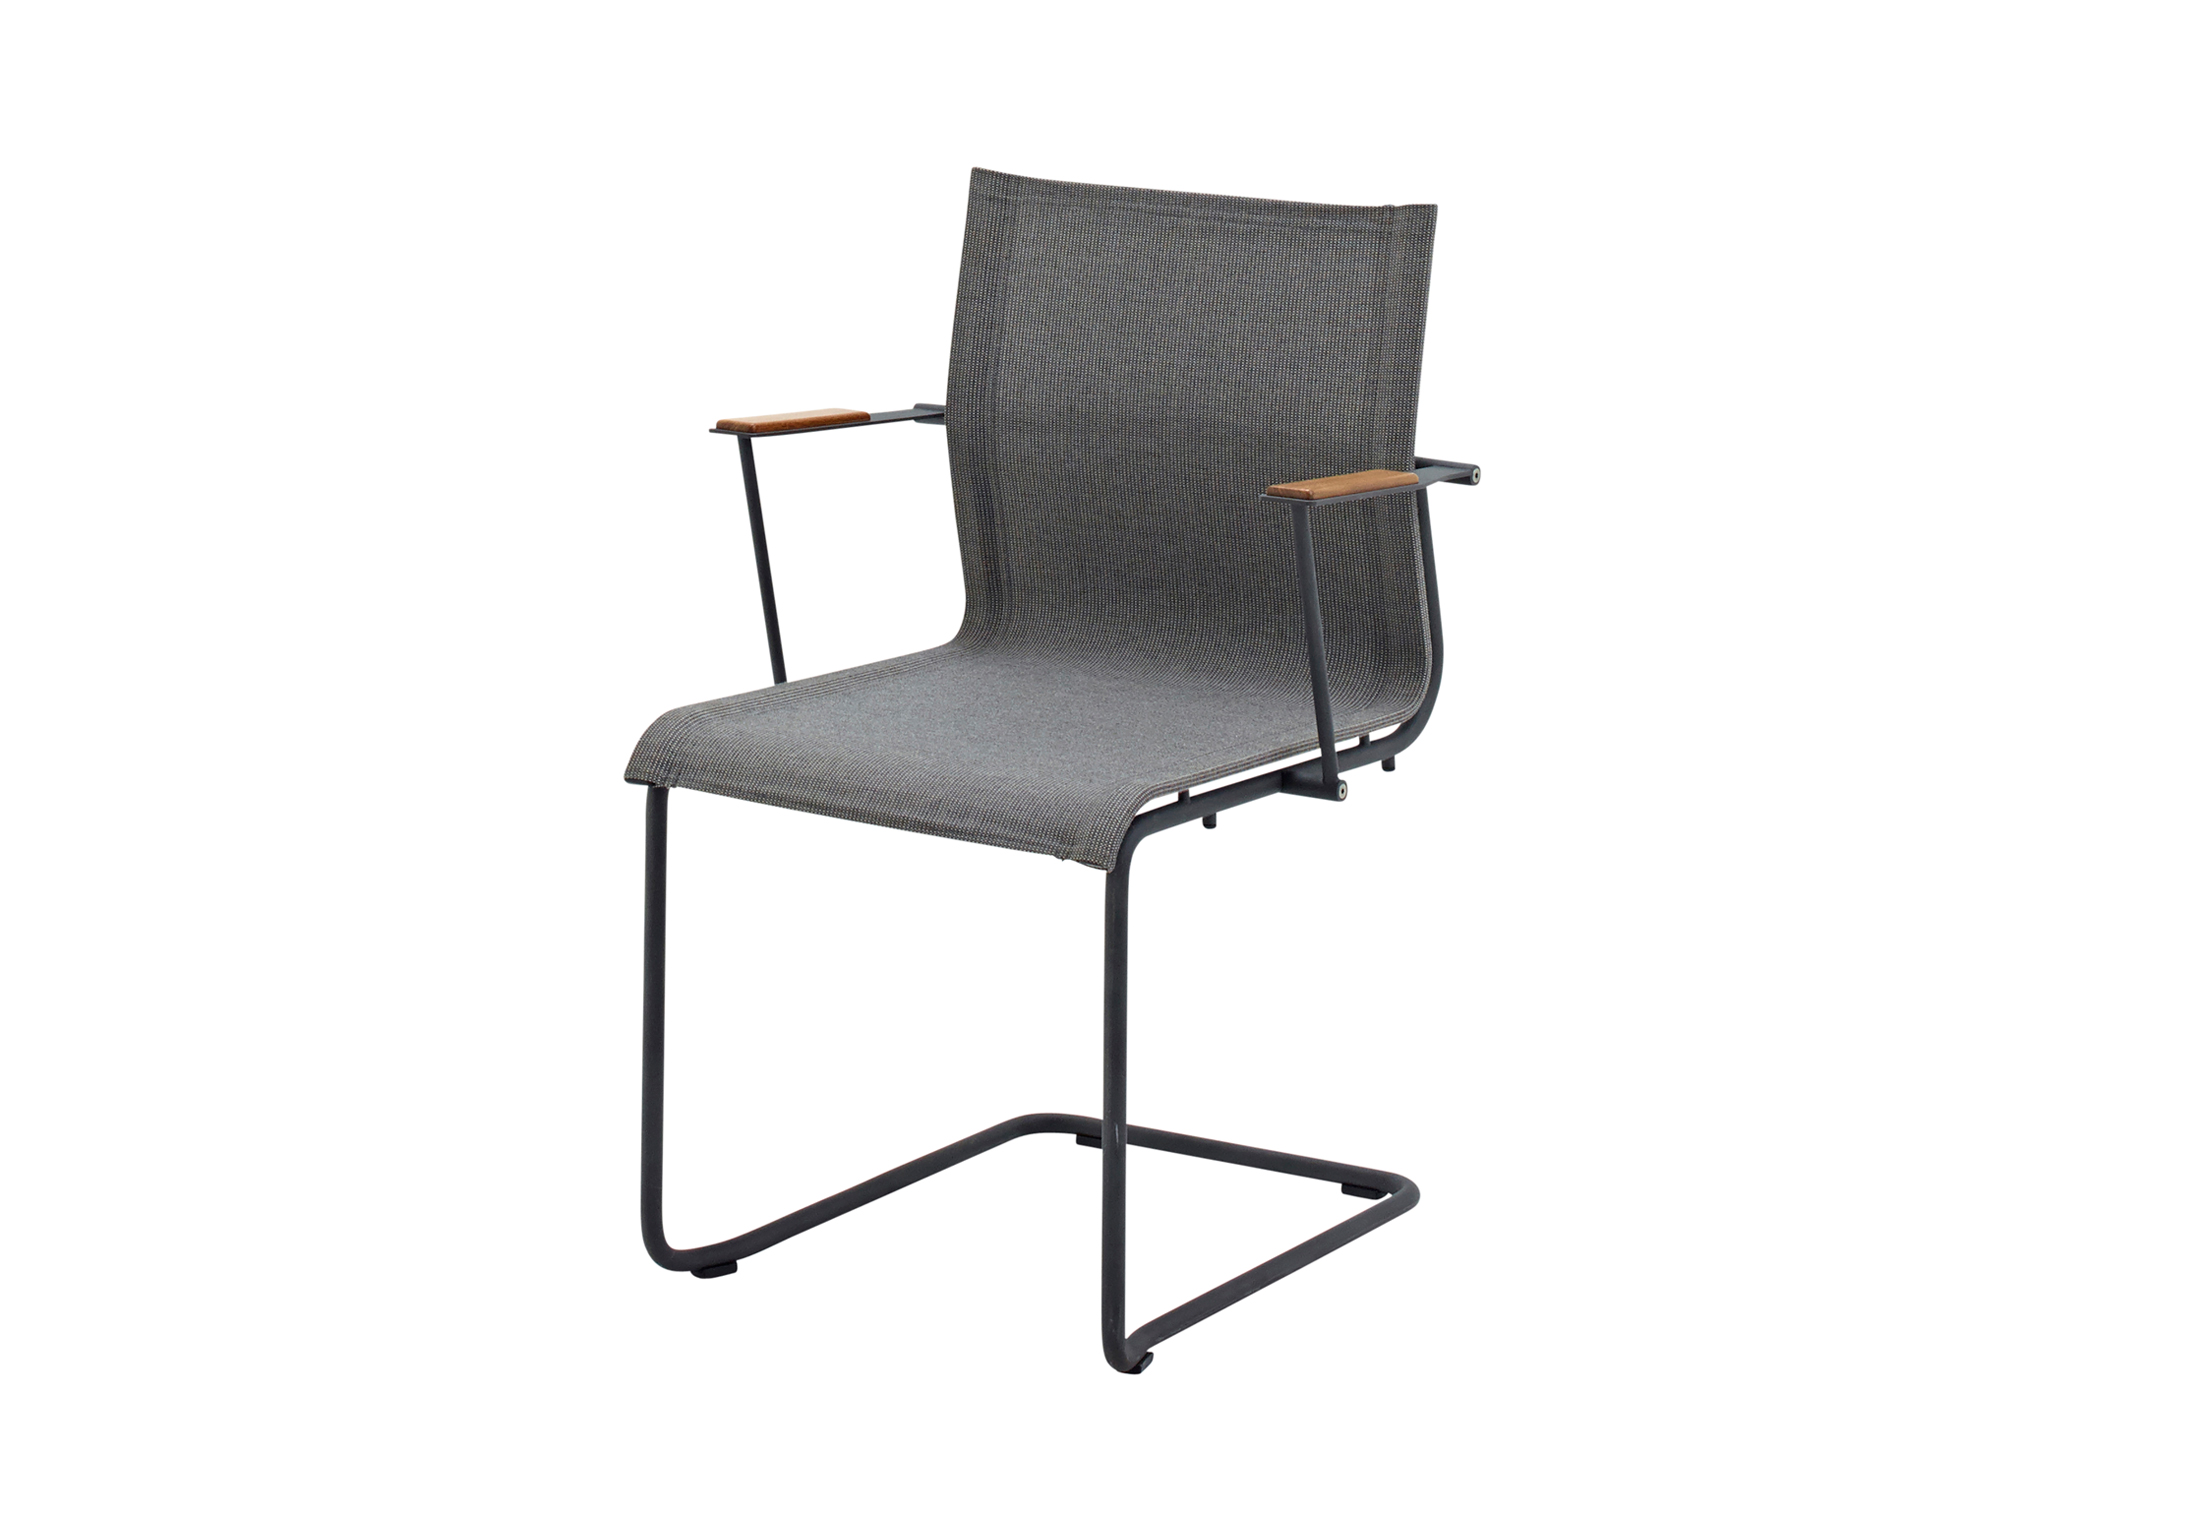 Sway stacking chair with arms by gloster furniture stylepark